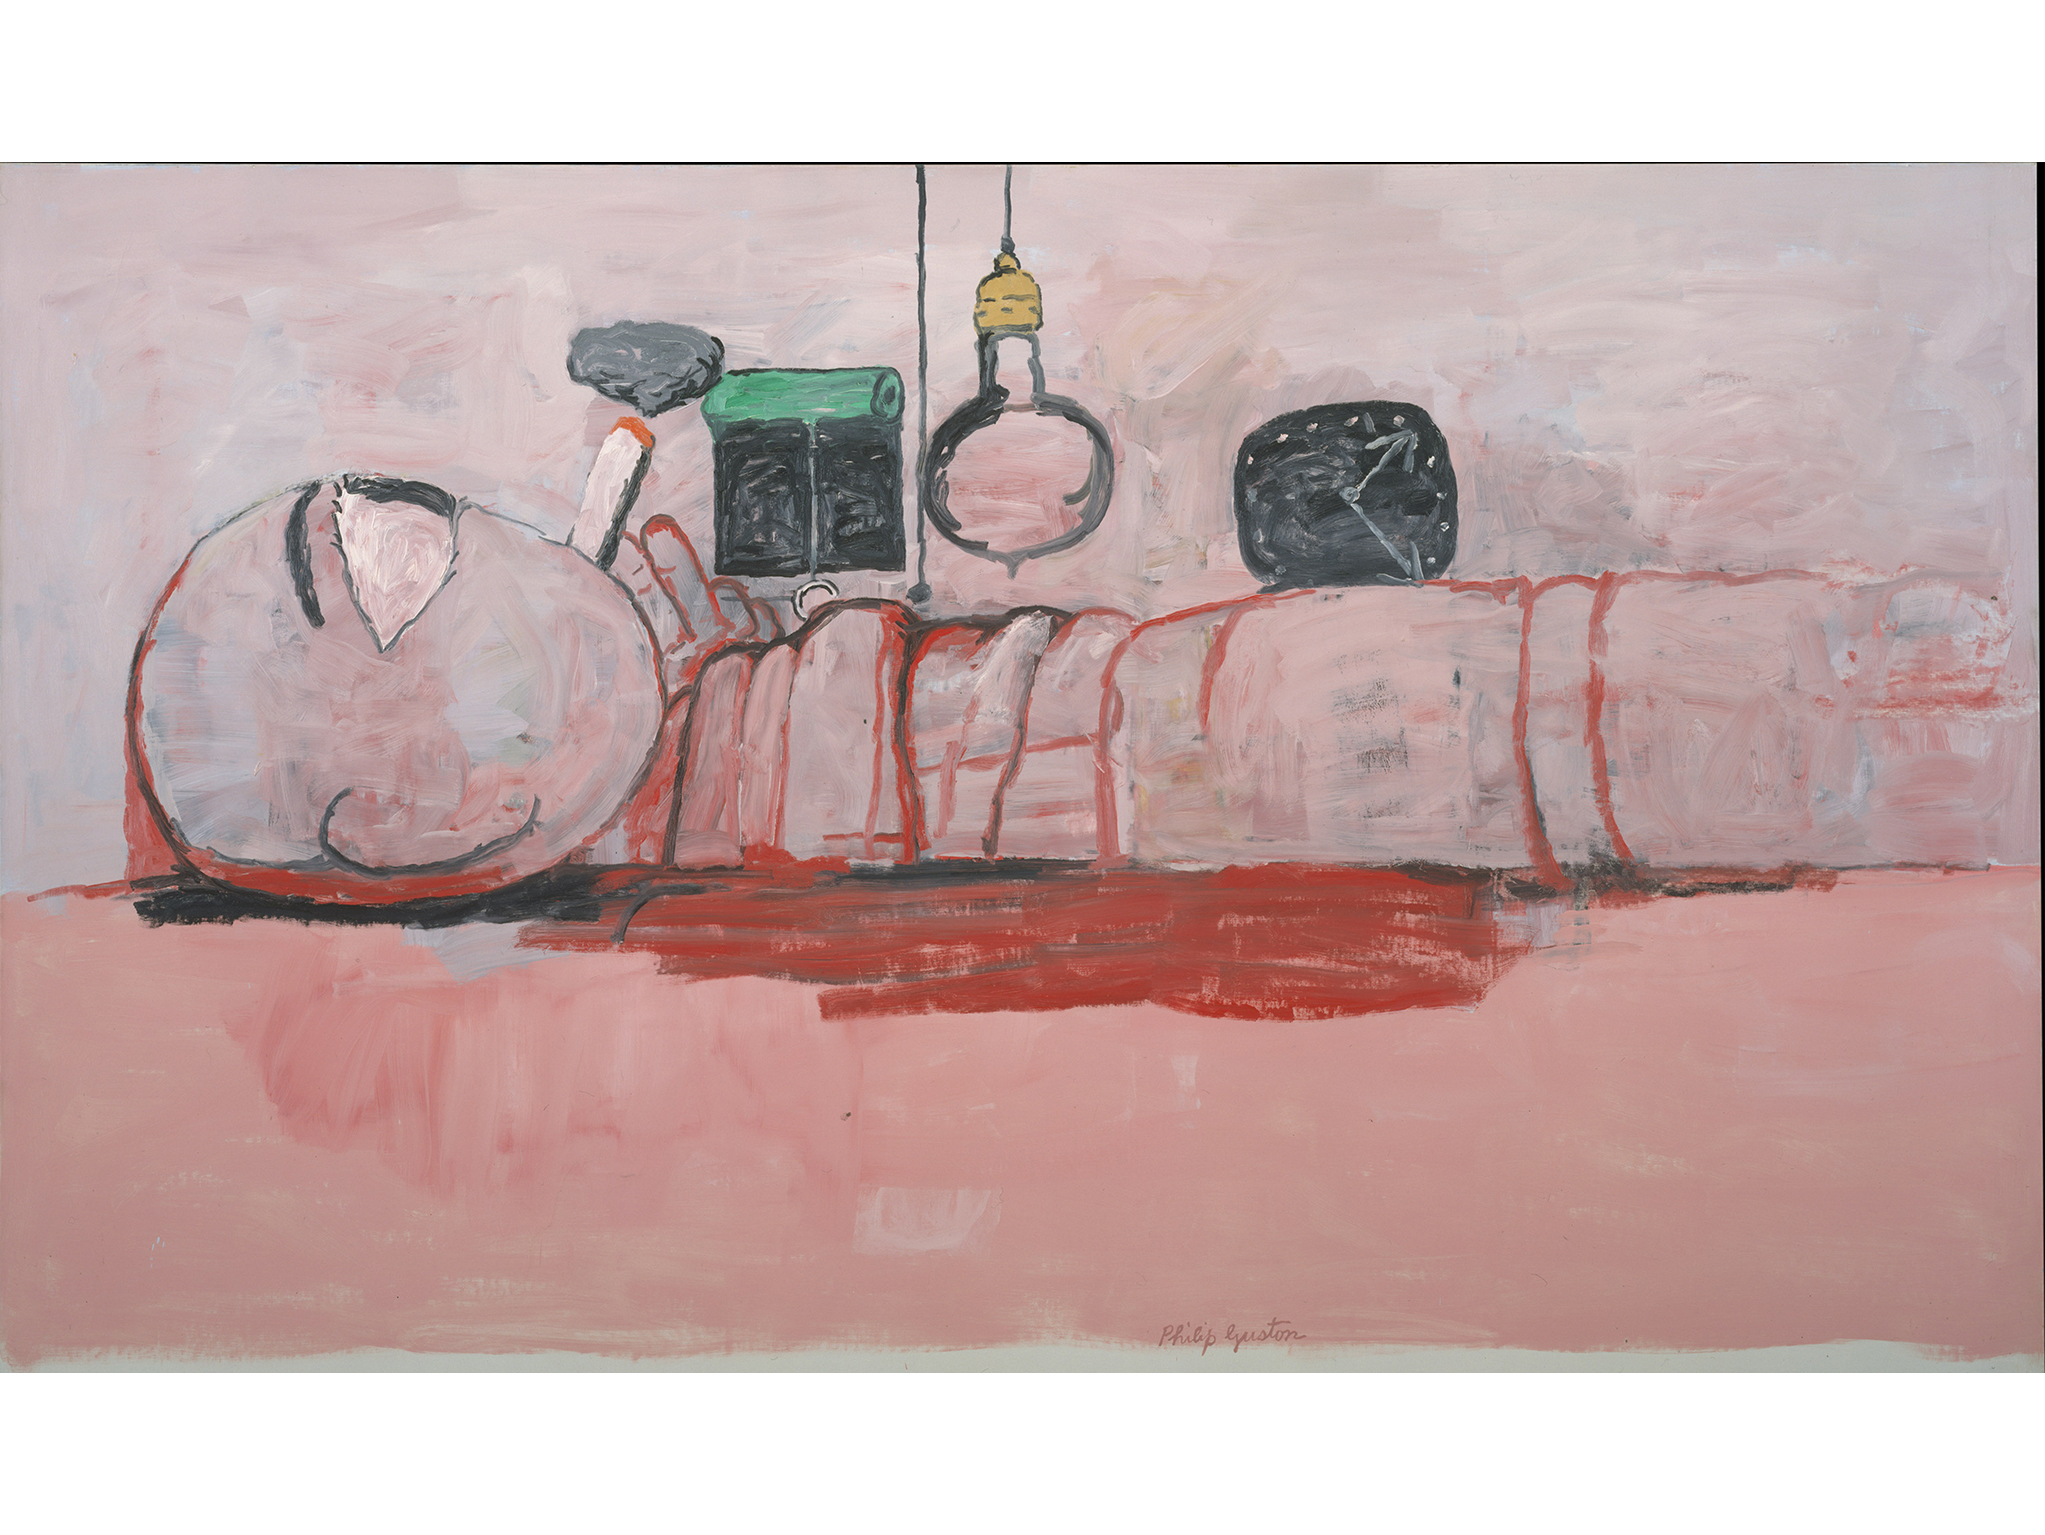 Stationary Figure (1973), Philip Guston